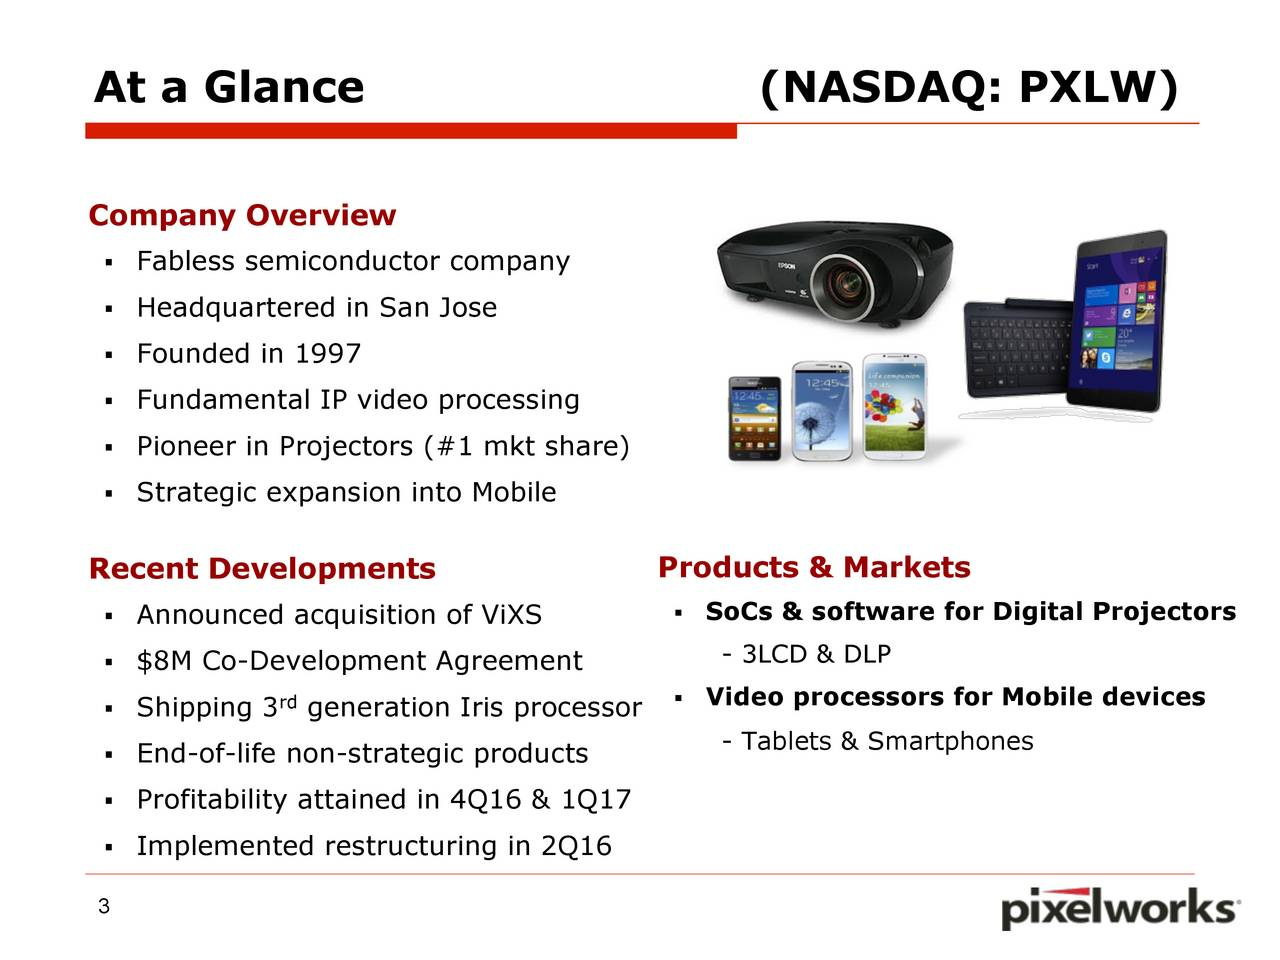 Company Overview Fabless semiconductor company Headquartered in San Jose Founded in 1997 Fundamental IP video processing Pioneer in Projectors (#1 mkt share) Strategic expansion into Mobile Recent Developments Products & Markets Announced acquisition of ViXS  SoCs & software for Digital Projectors - 3LCD & DLP $8M Co-Development Agreement Shipping 3 rdgeneration Iris processor  Video processors for Mobile devices End-of-life non-strategic products - Tablets & Smartphones Profitability attained in 4Q16 & 1Q17 Implemented restructuring in 2Q16 3